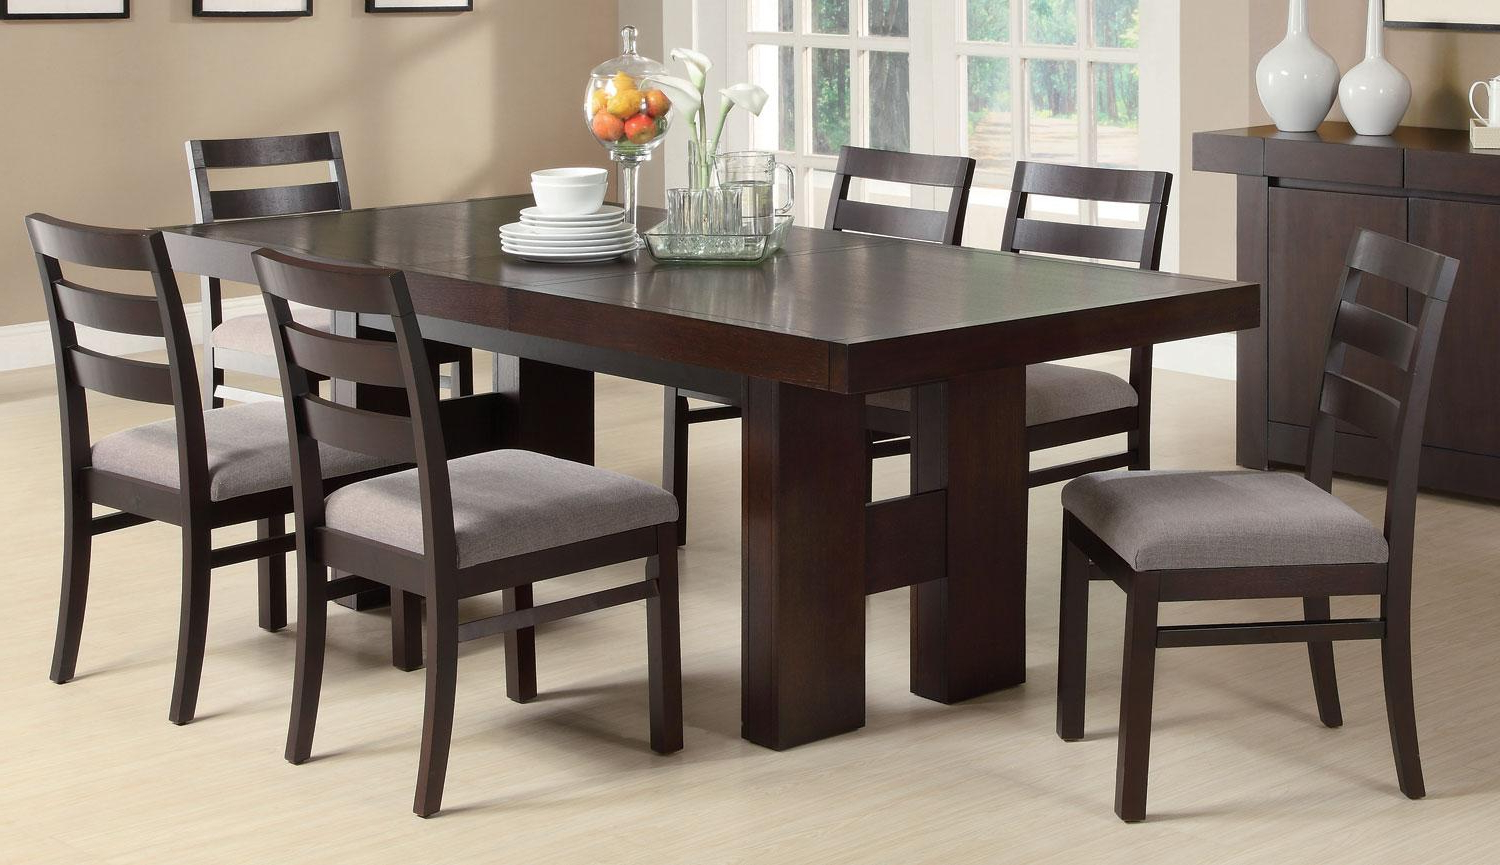 Newest Coaster Dabny Dining Table Regarding Transitional Rectangular Dining Tables (View 9 of 21)